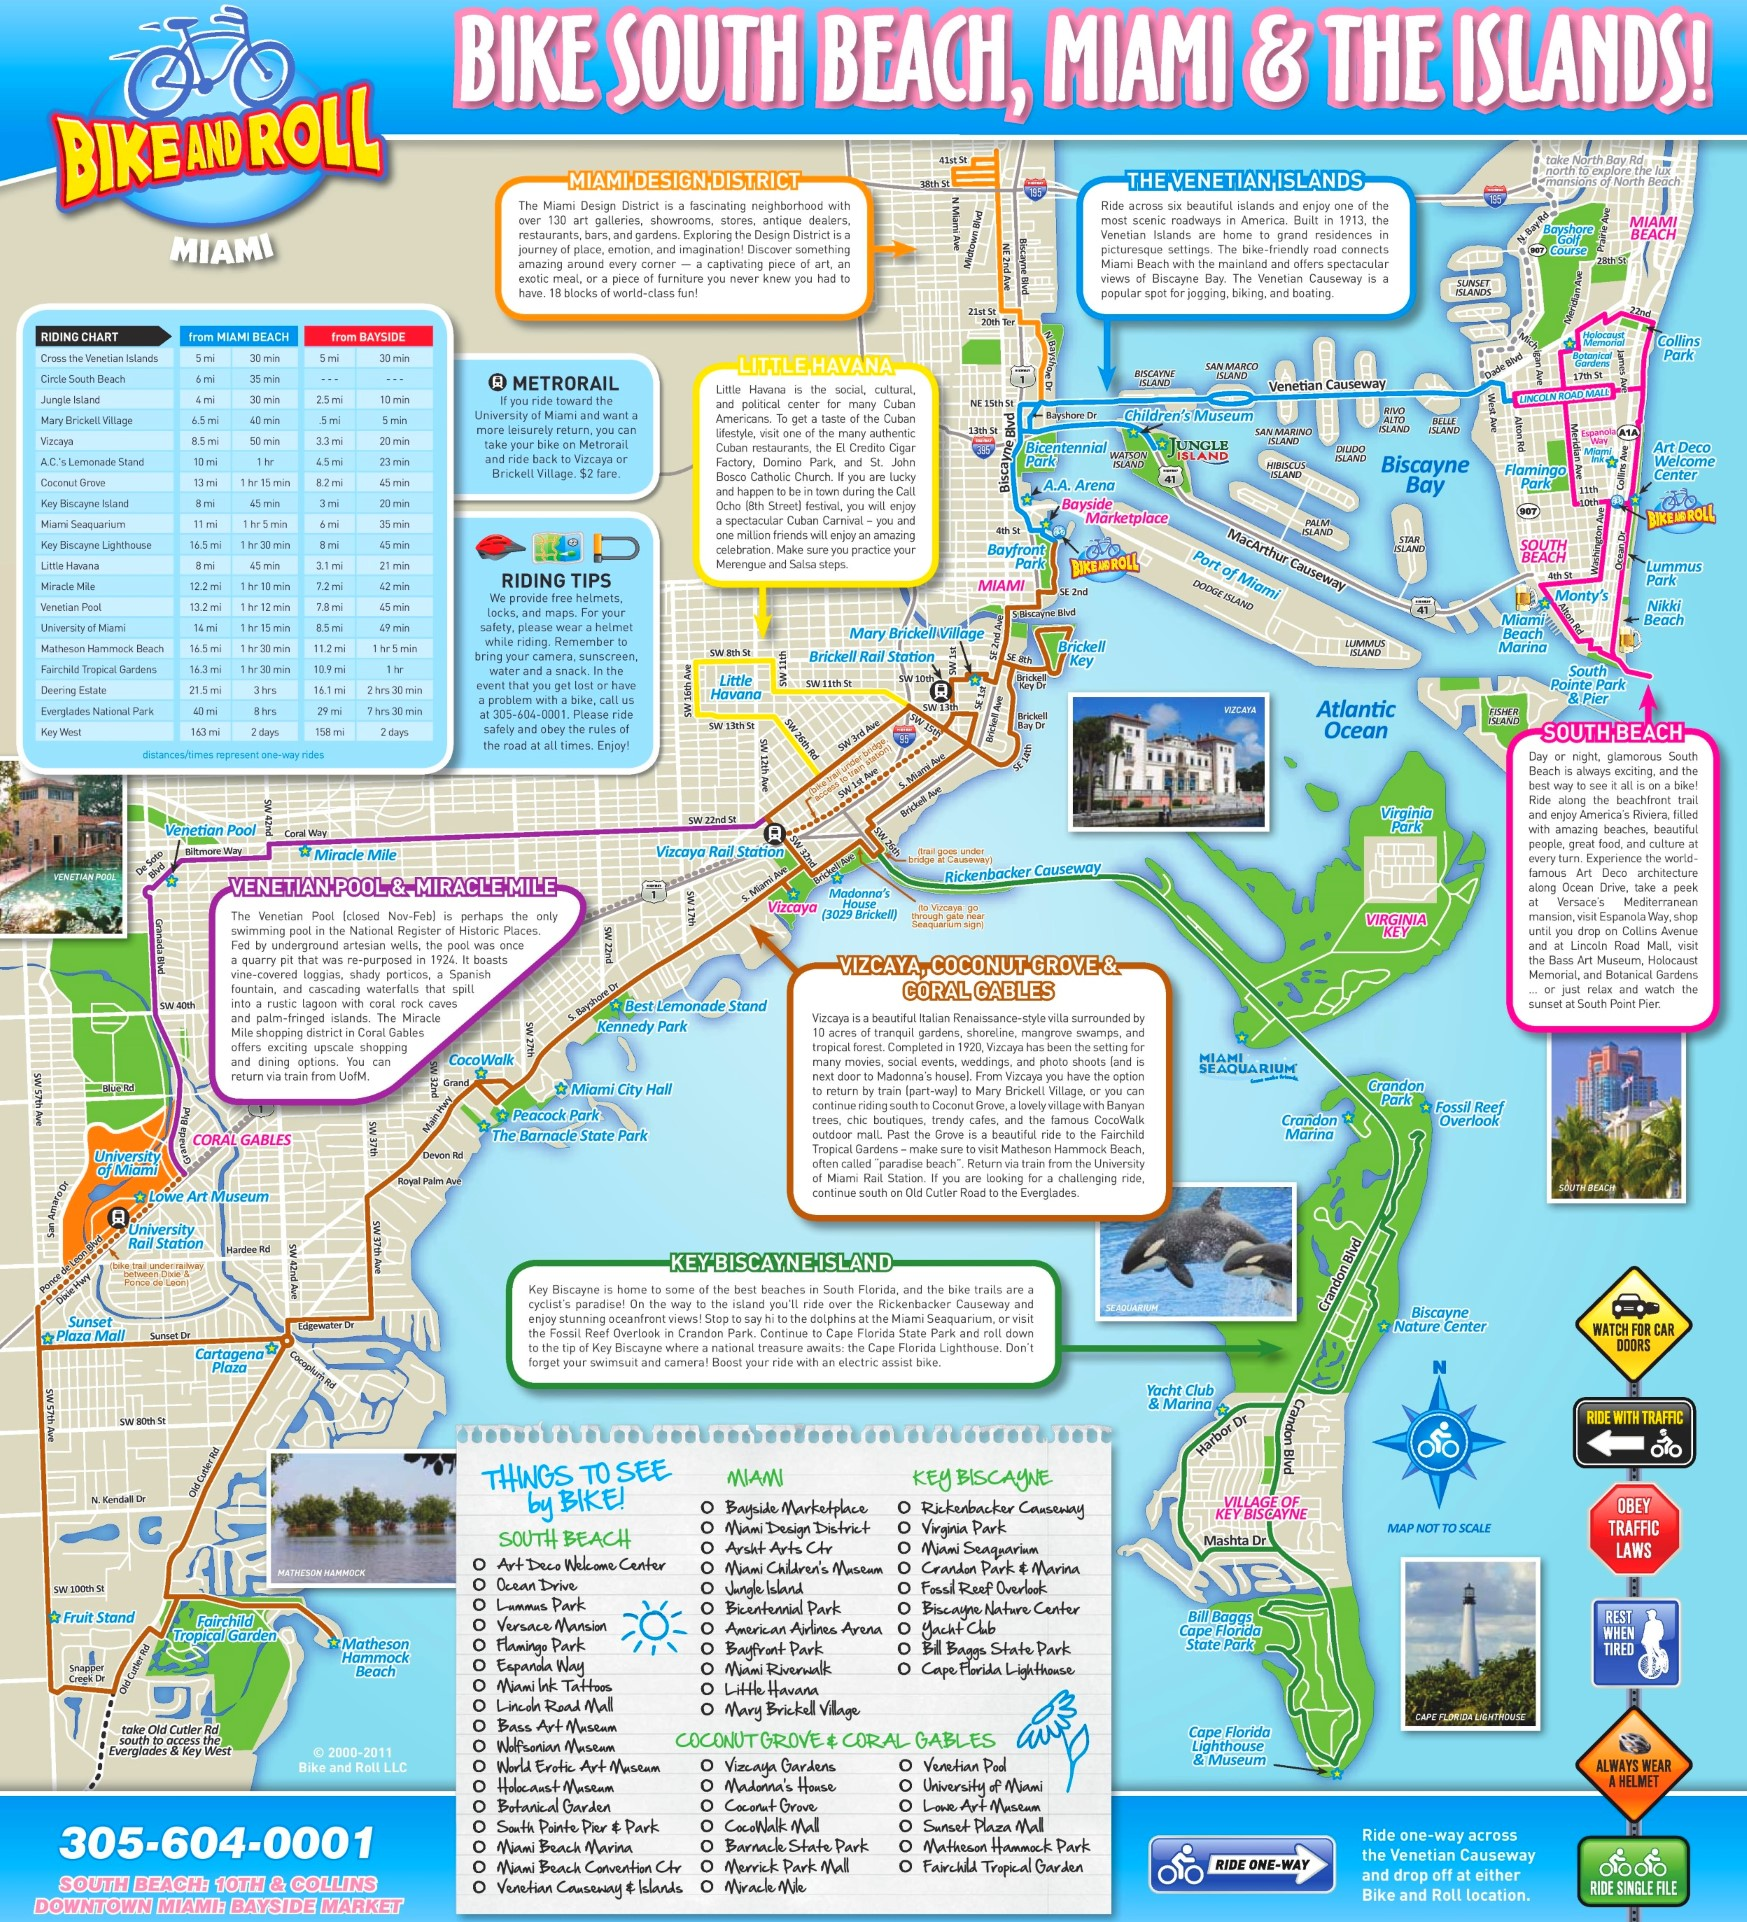 South Beach Miami Map Miami and South Beach bike map